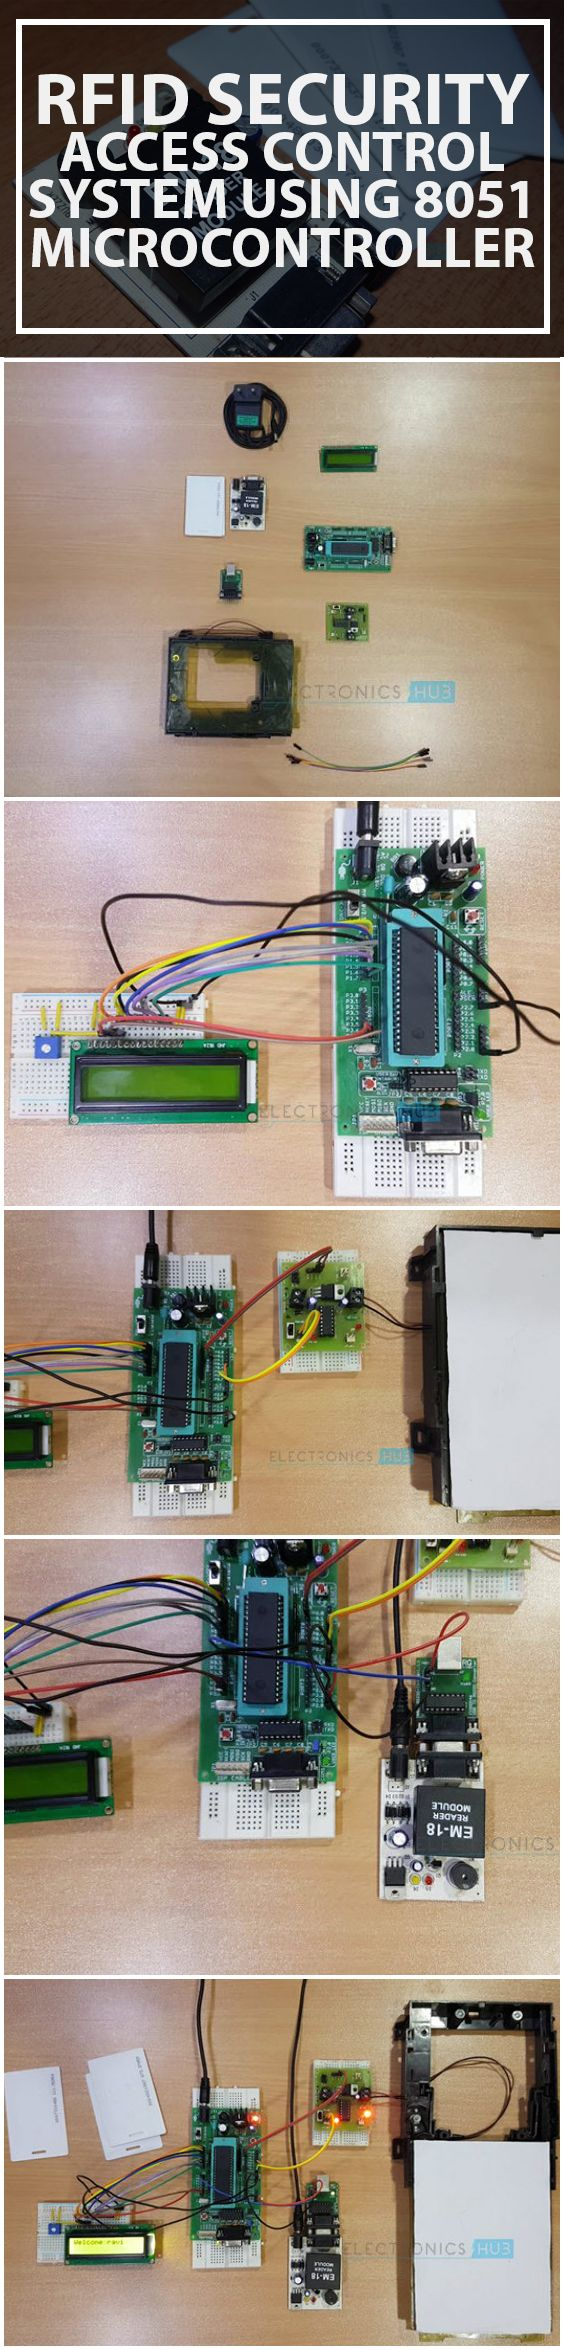 27 Best Arduino Images On Pinterest Projects Classroom Digital Code Lock Project Using 8051 Microcontroller At89c51 With Rfid Security Access Control System Is An Technology Based